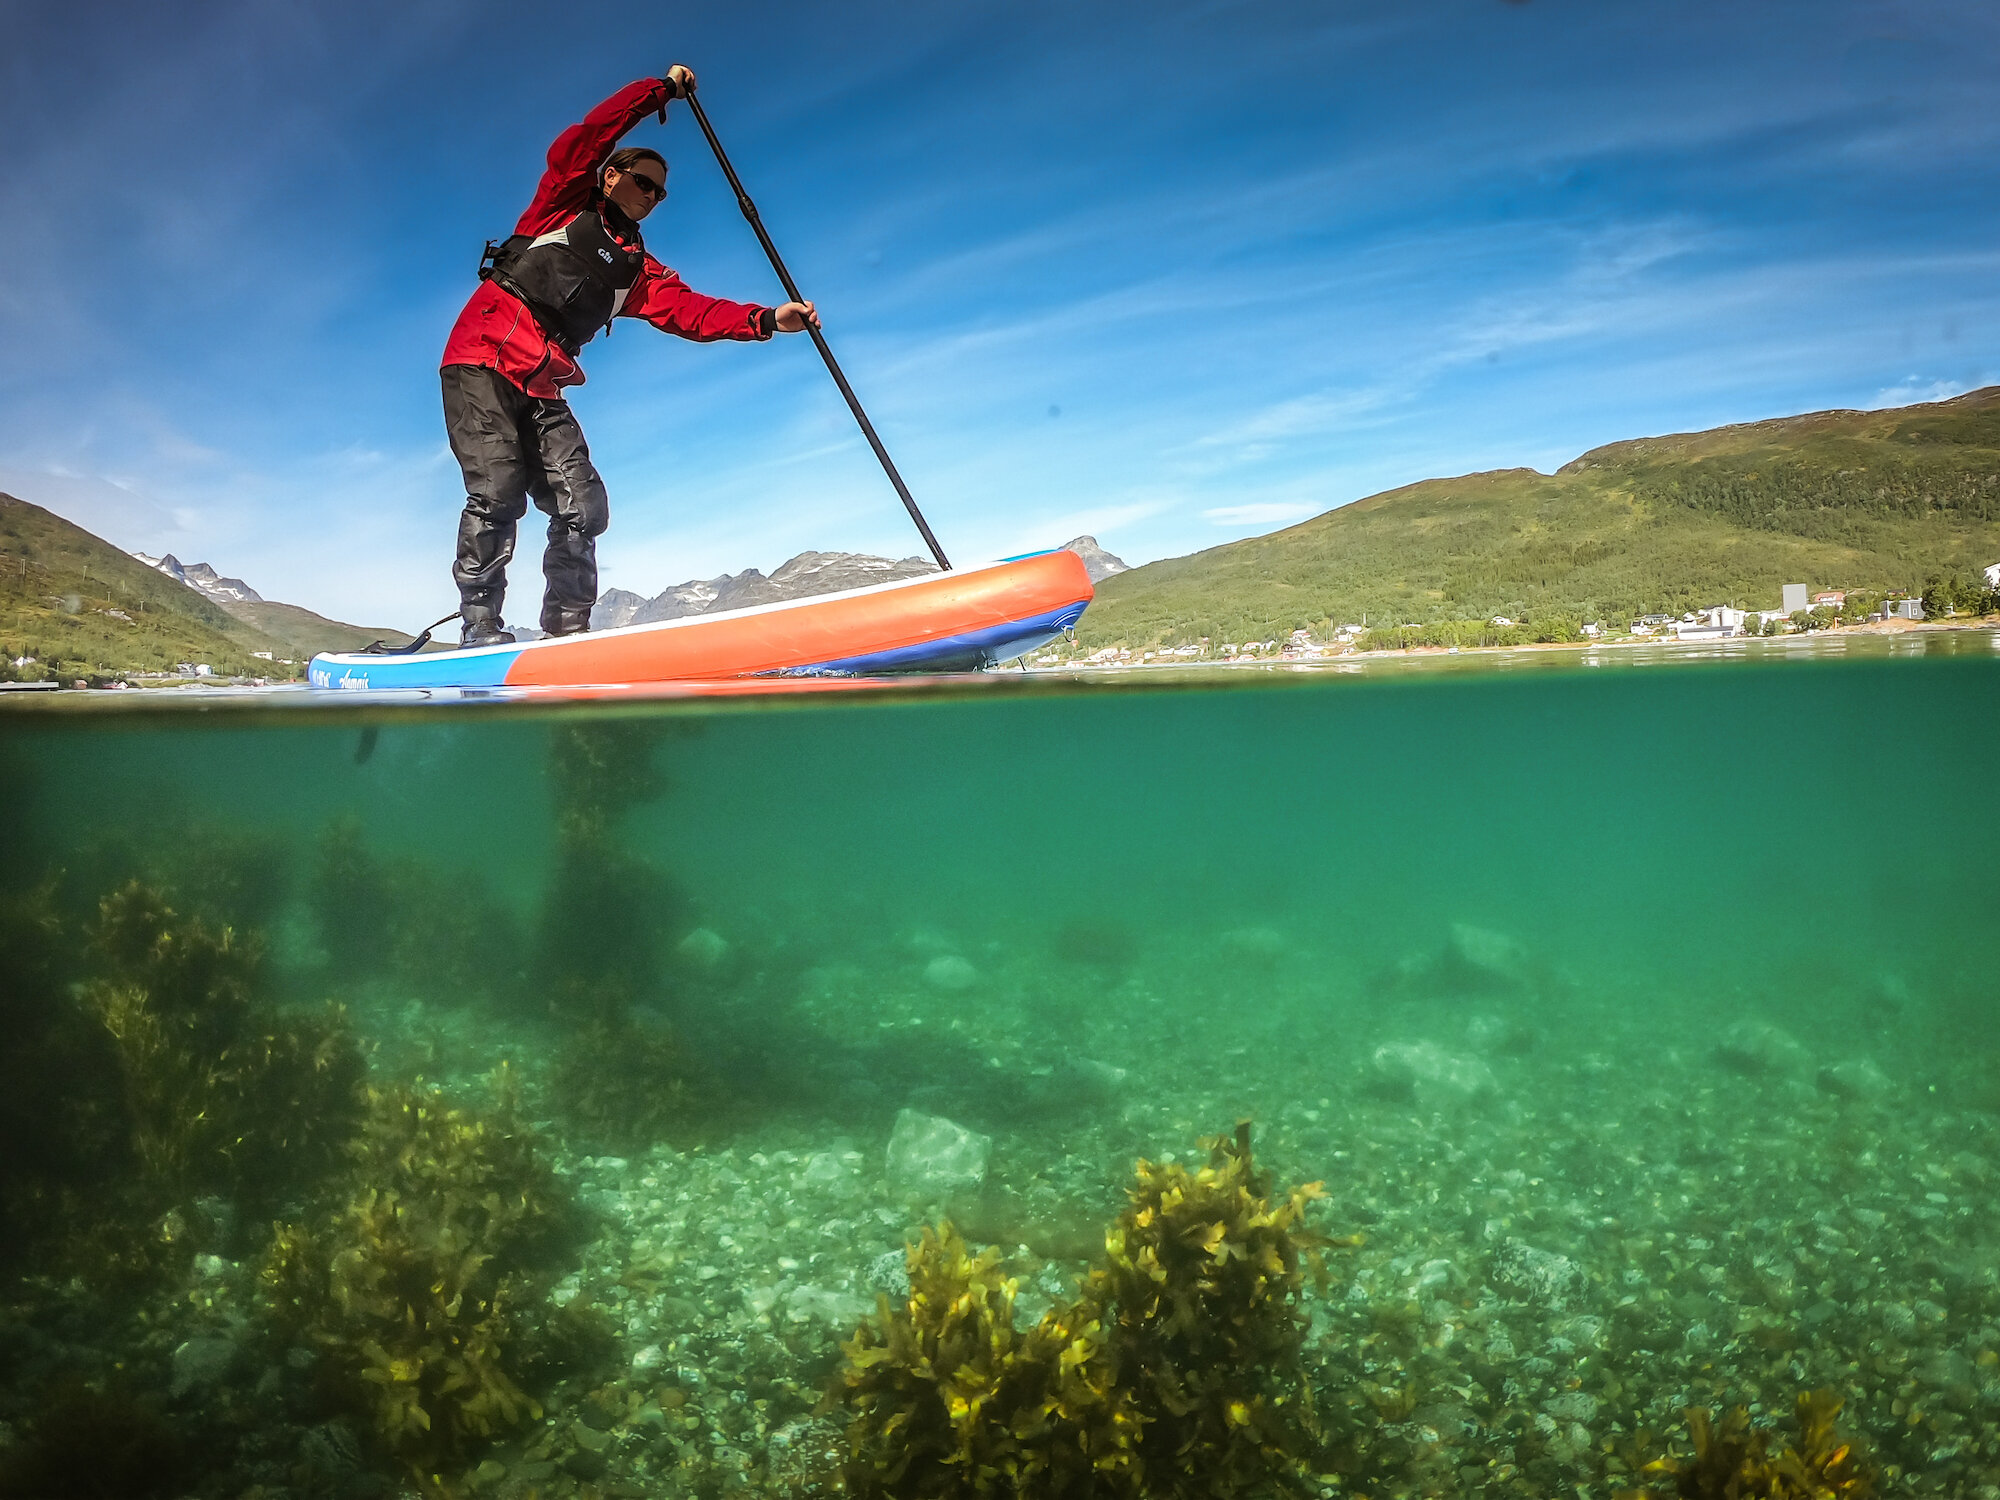 Paddleboarding gives a unique perspective on the underwater world